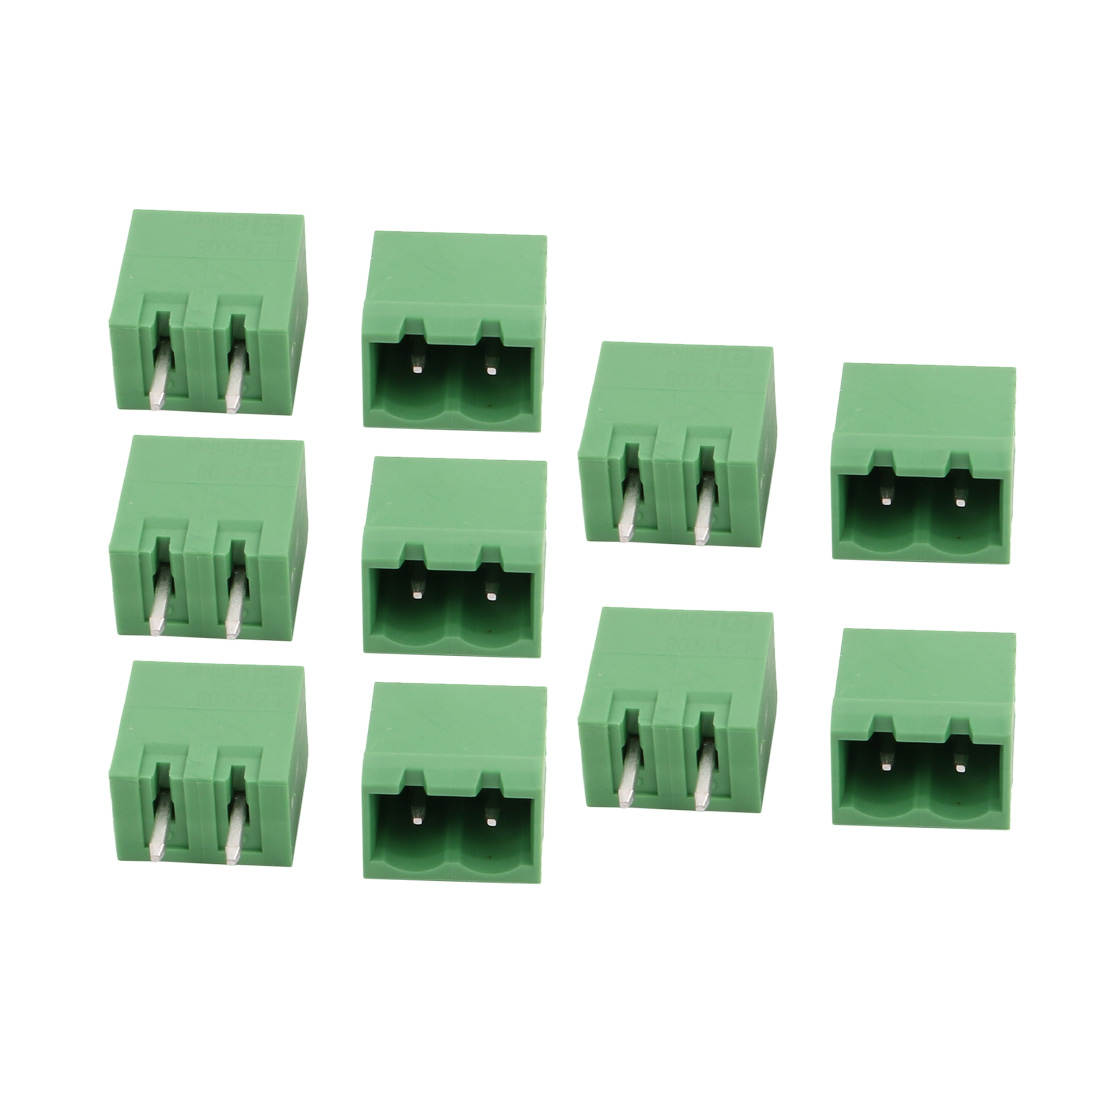 10 Pcs LZ1V 5.08mm Pitch 2P PCB Mounting Terminal Block Wire Connector